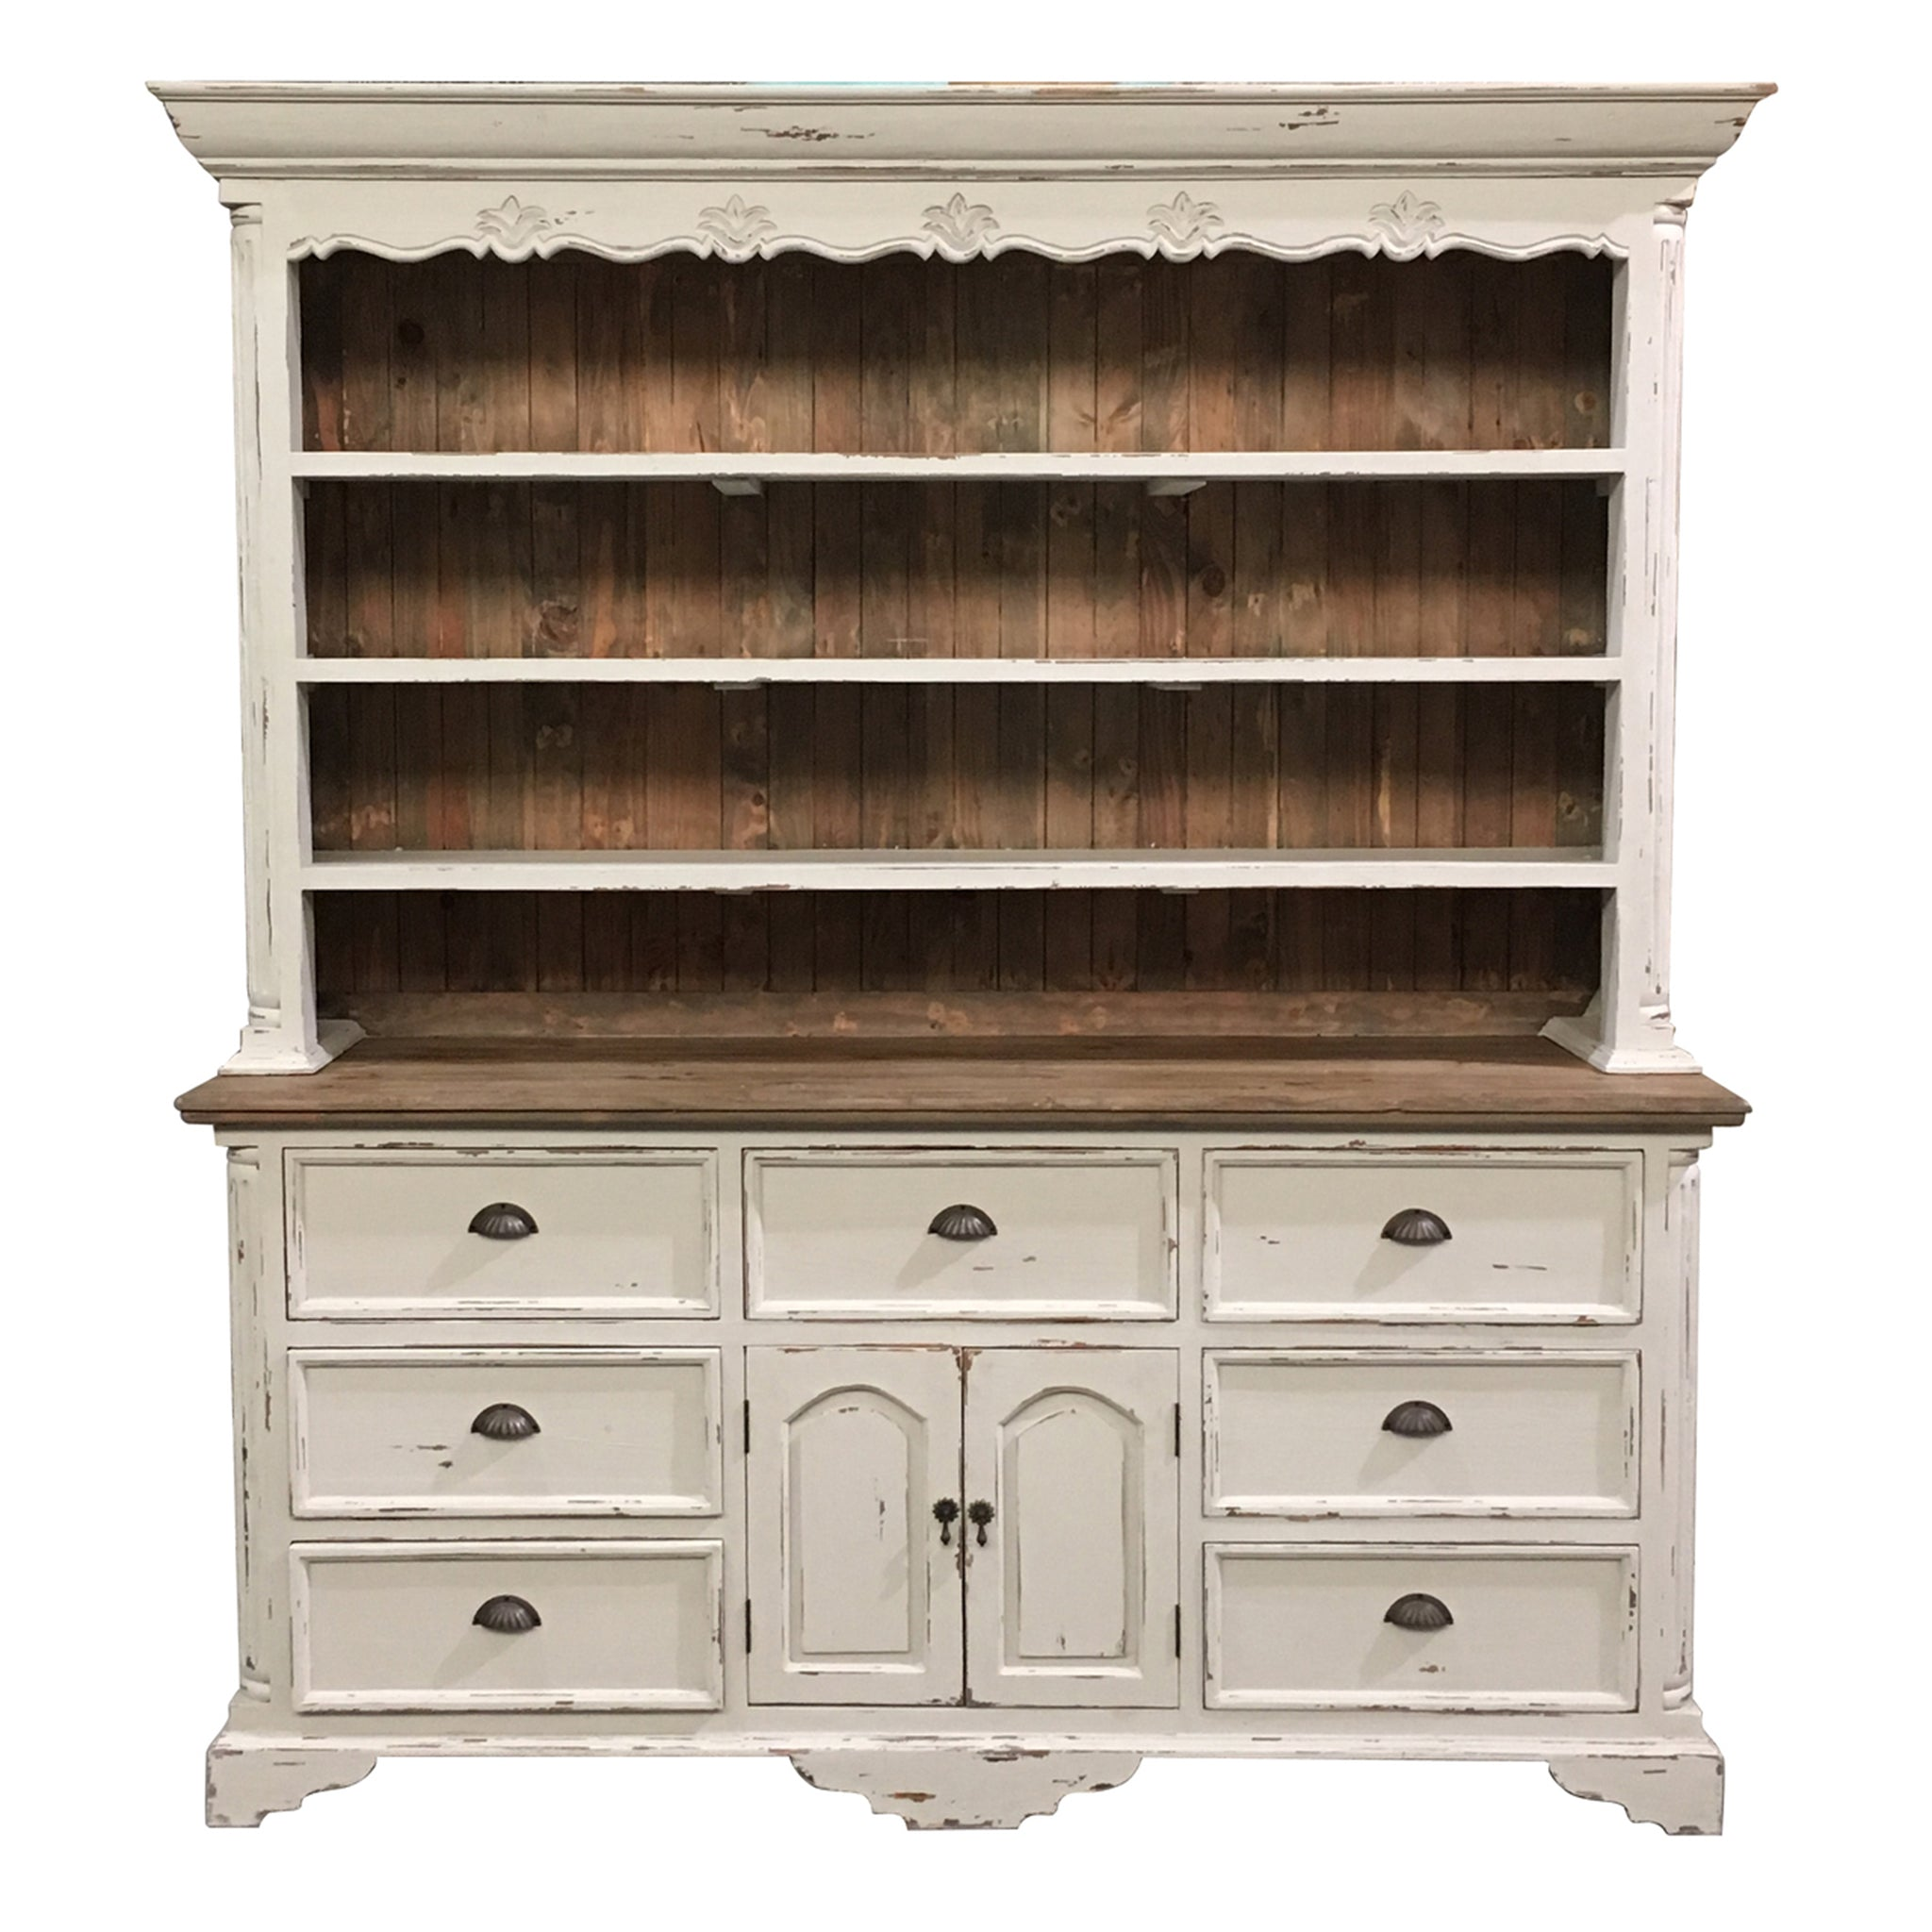 Farmhouse Buffet and Hutch White Distressed with Natural Accents - Furniture on Main